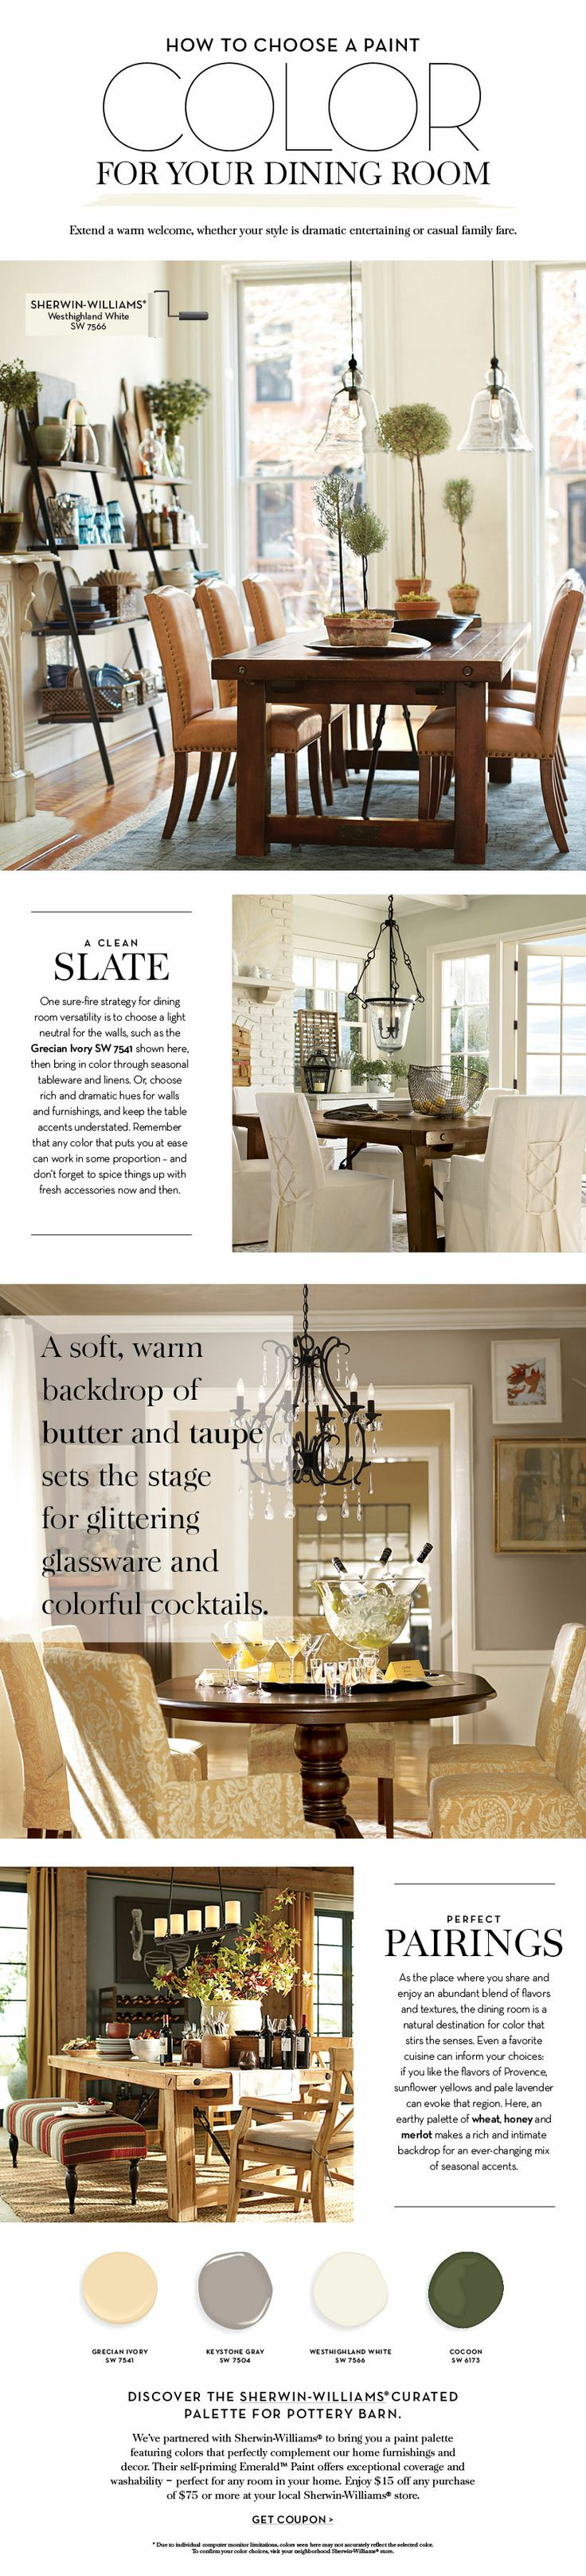 Choose a Paint Color For Your Dining Room | Pottery Barn